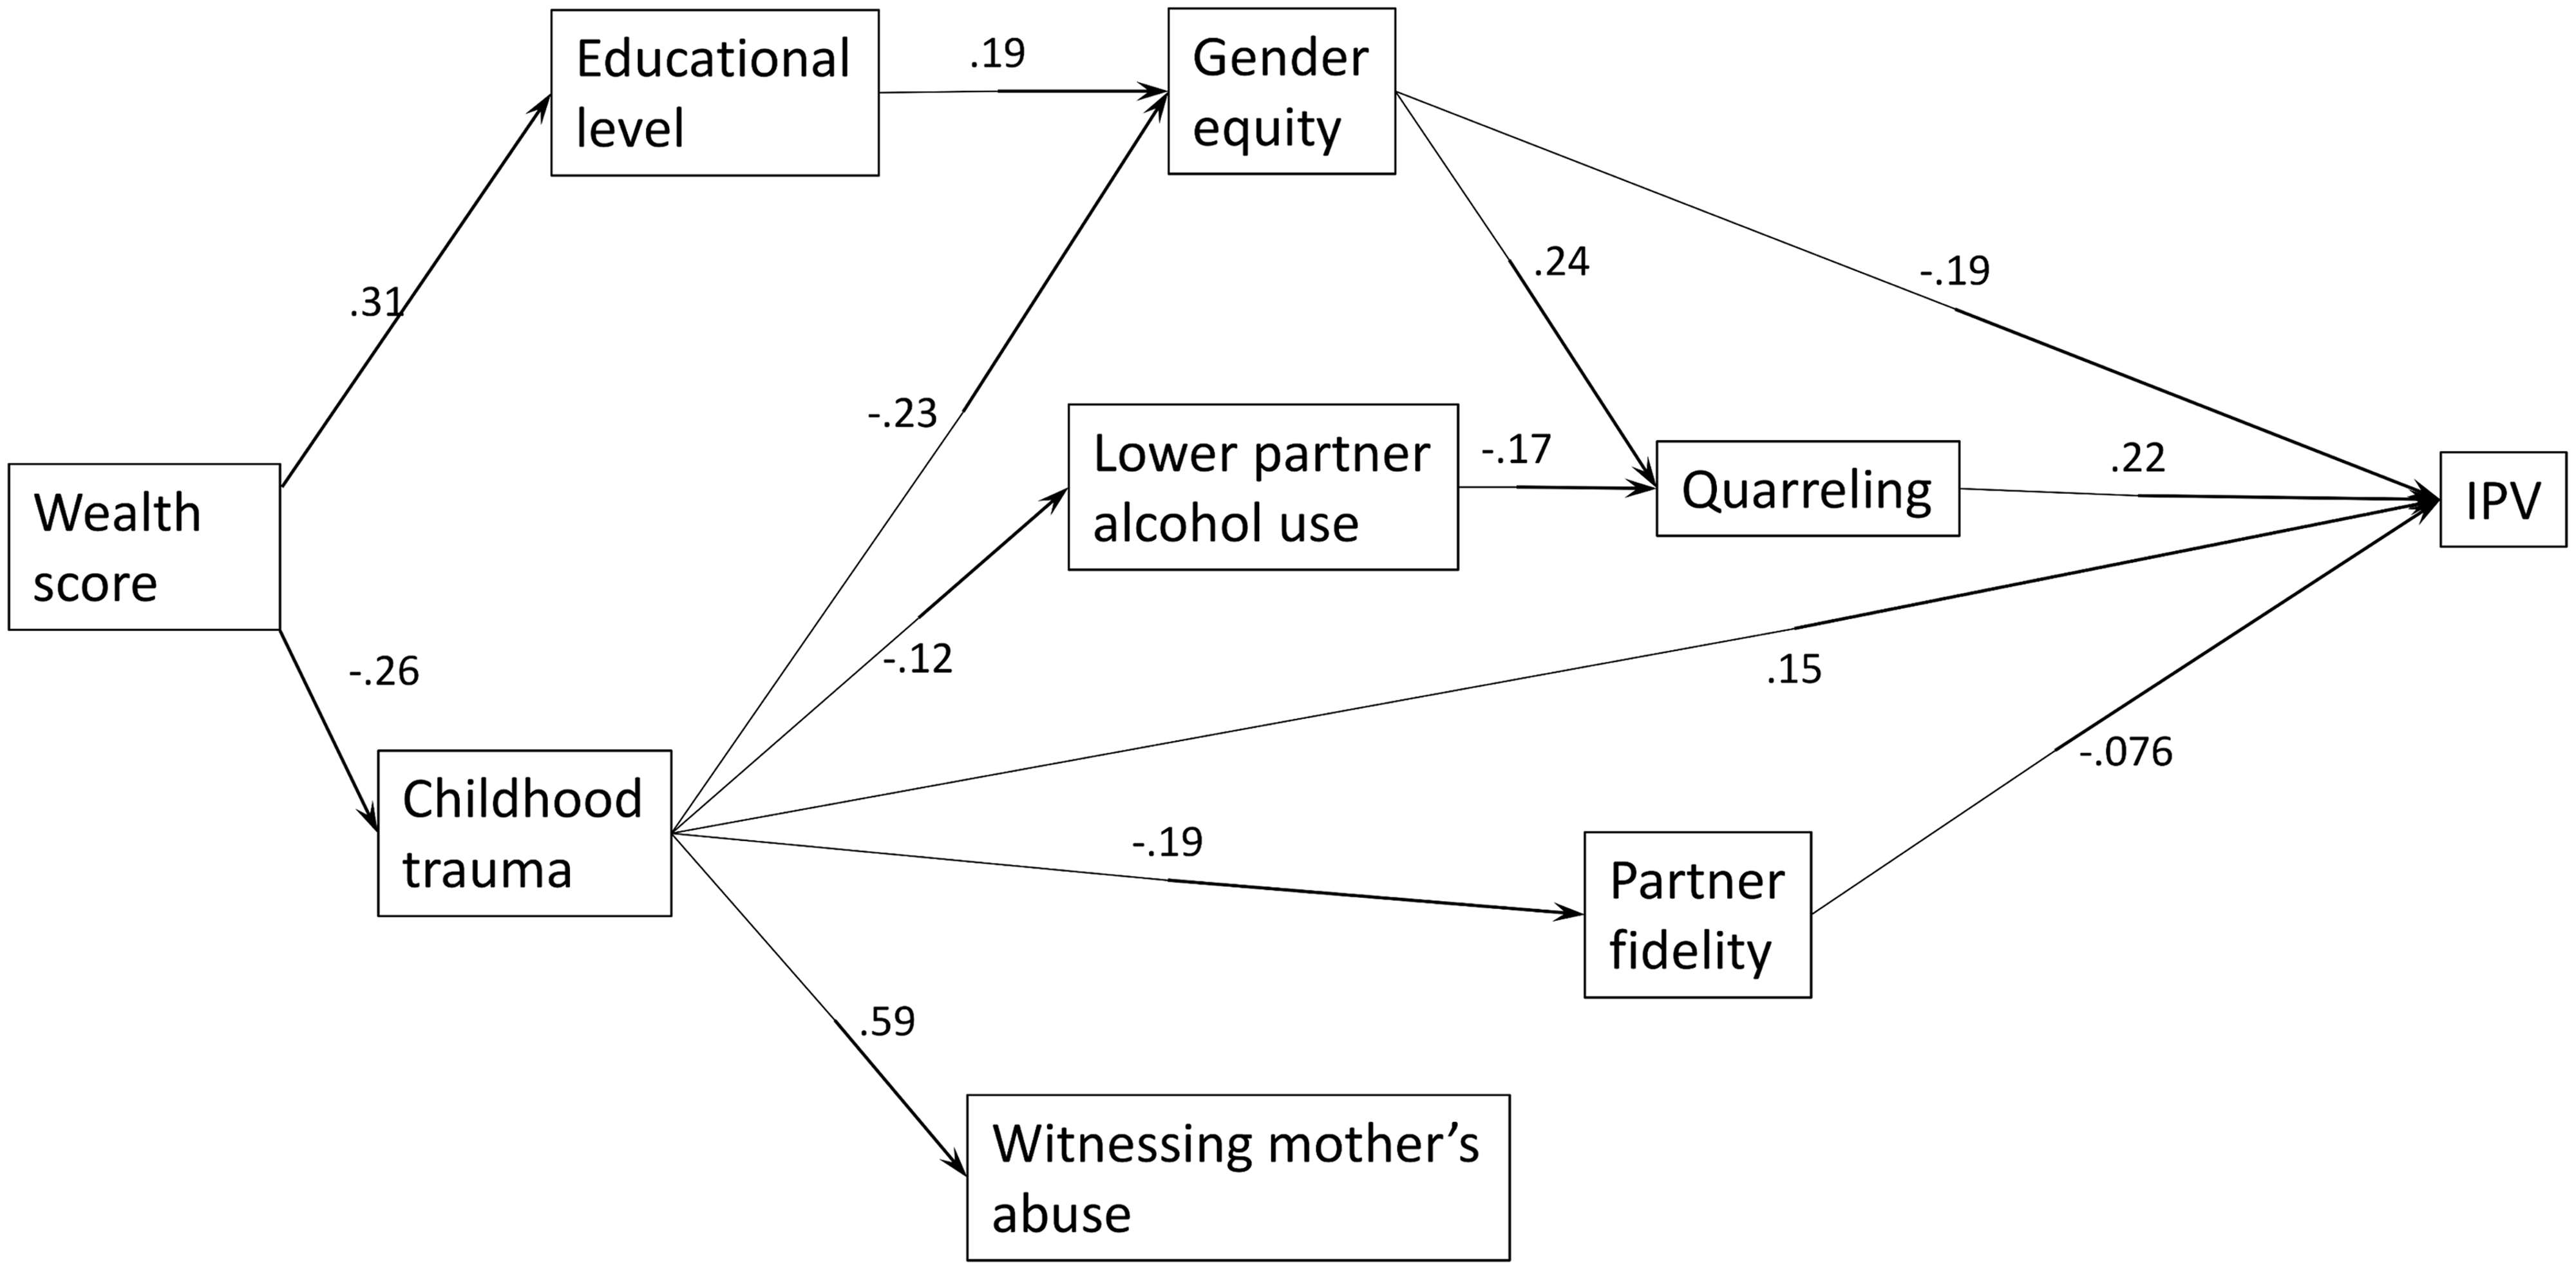 Final structural model of final factors influencing women's experience of intimate partner violence (IPV) (standardized path coefficients [only statistically significant paths shown]).